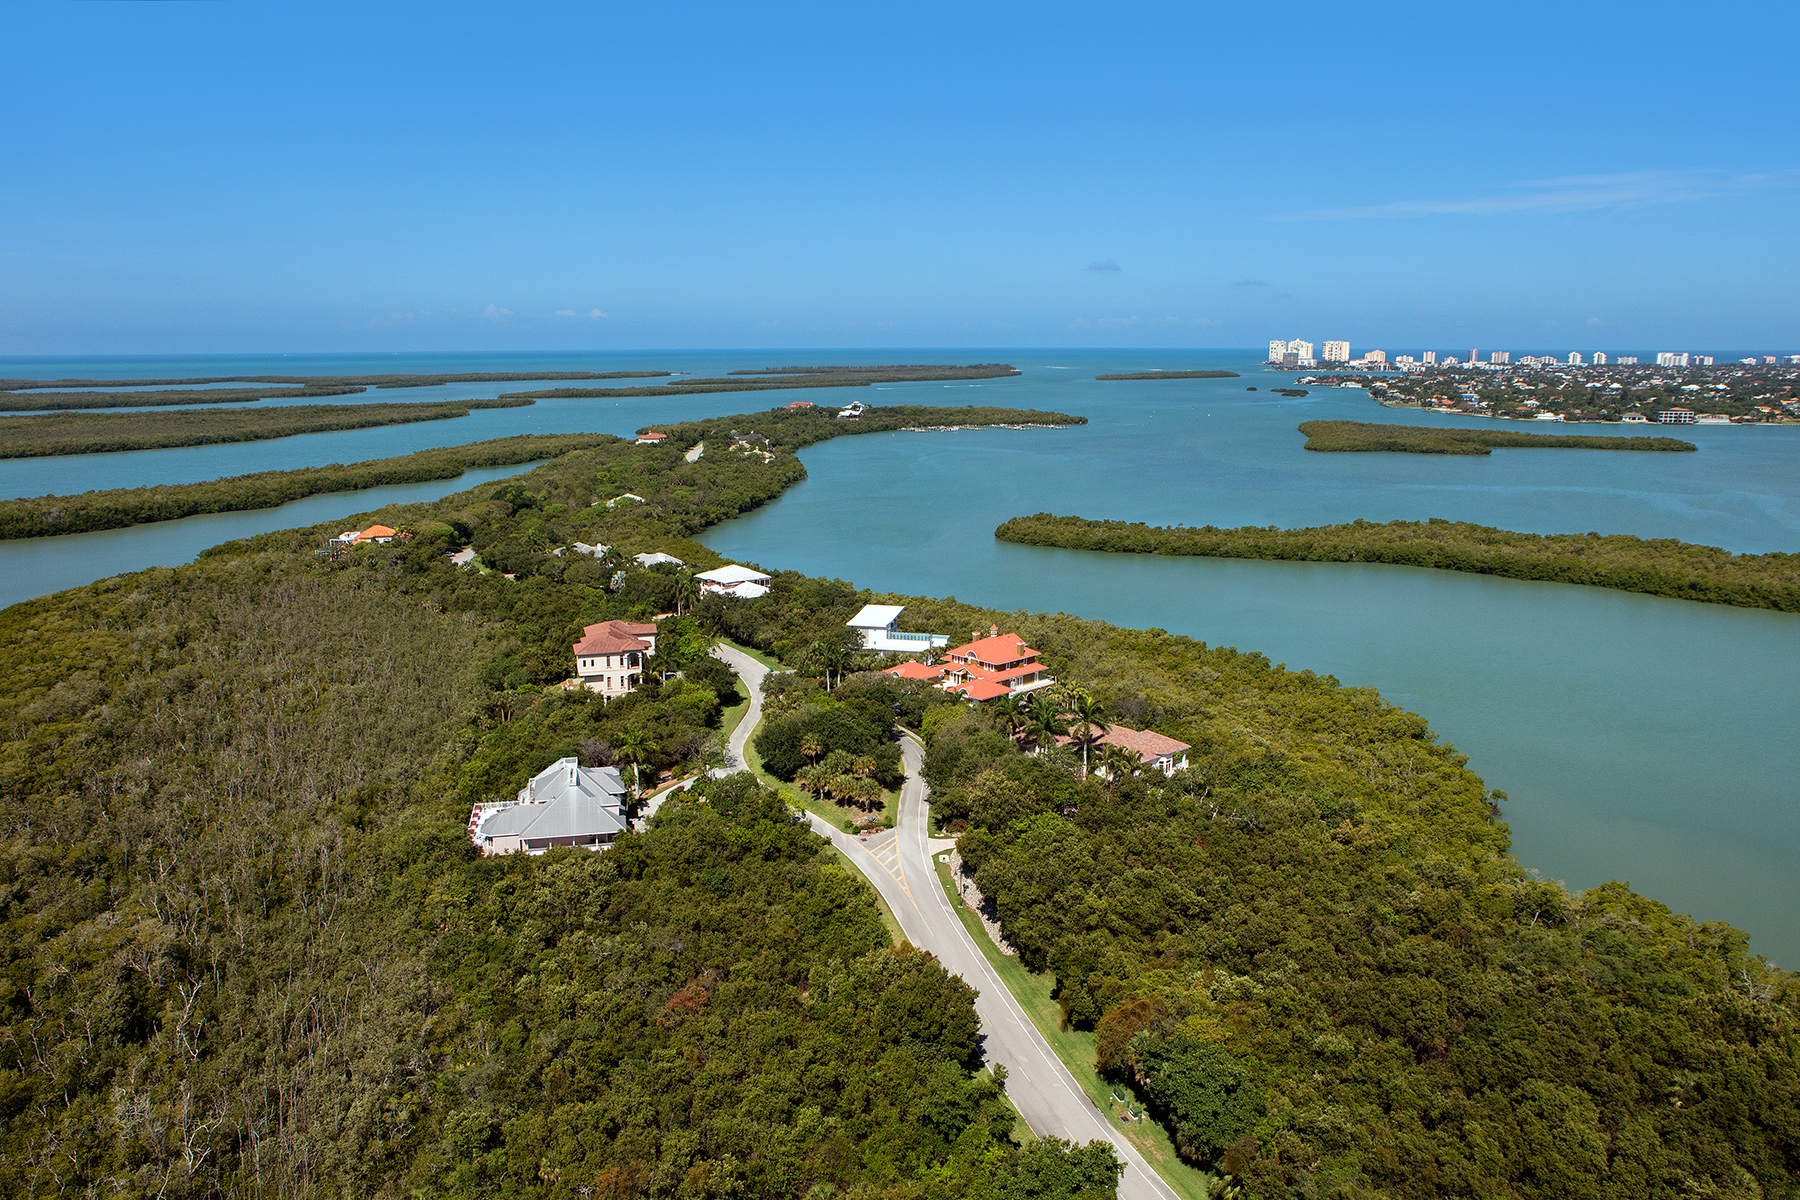 Land for Sale at MARCO ISLAND KEY MARCO 1126 Blue Hill Creek Dr, Marco Island, Florida 34145 United States